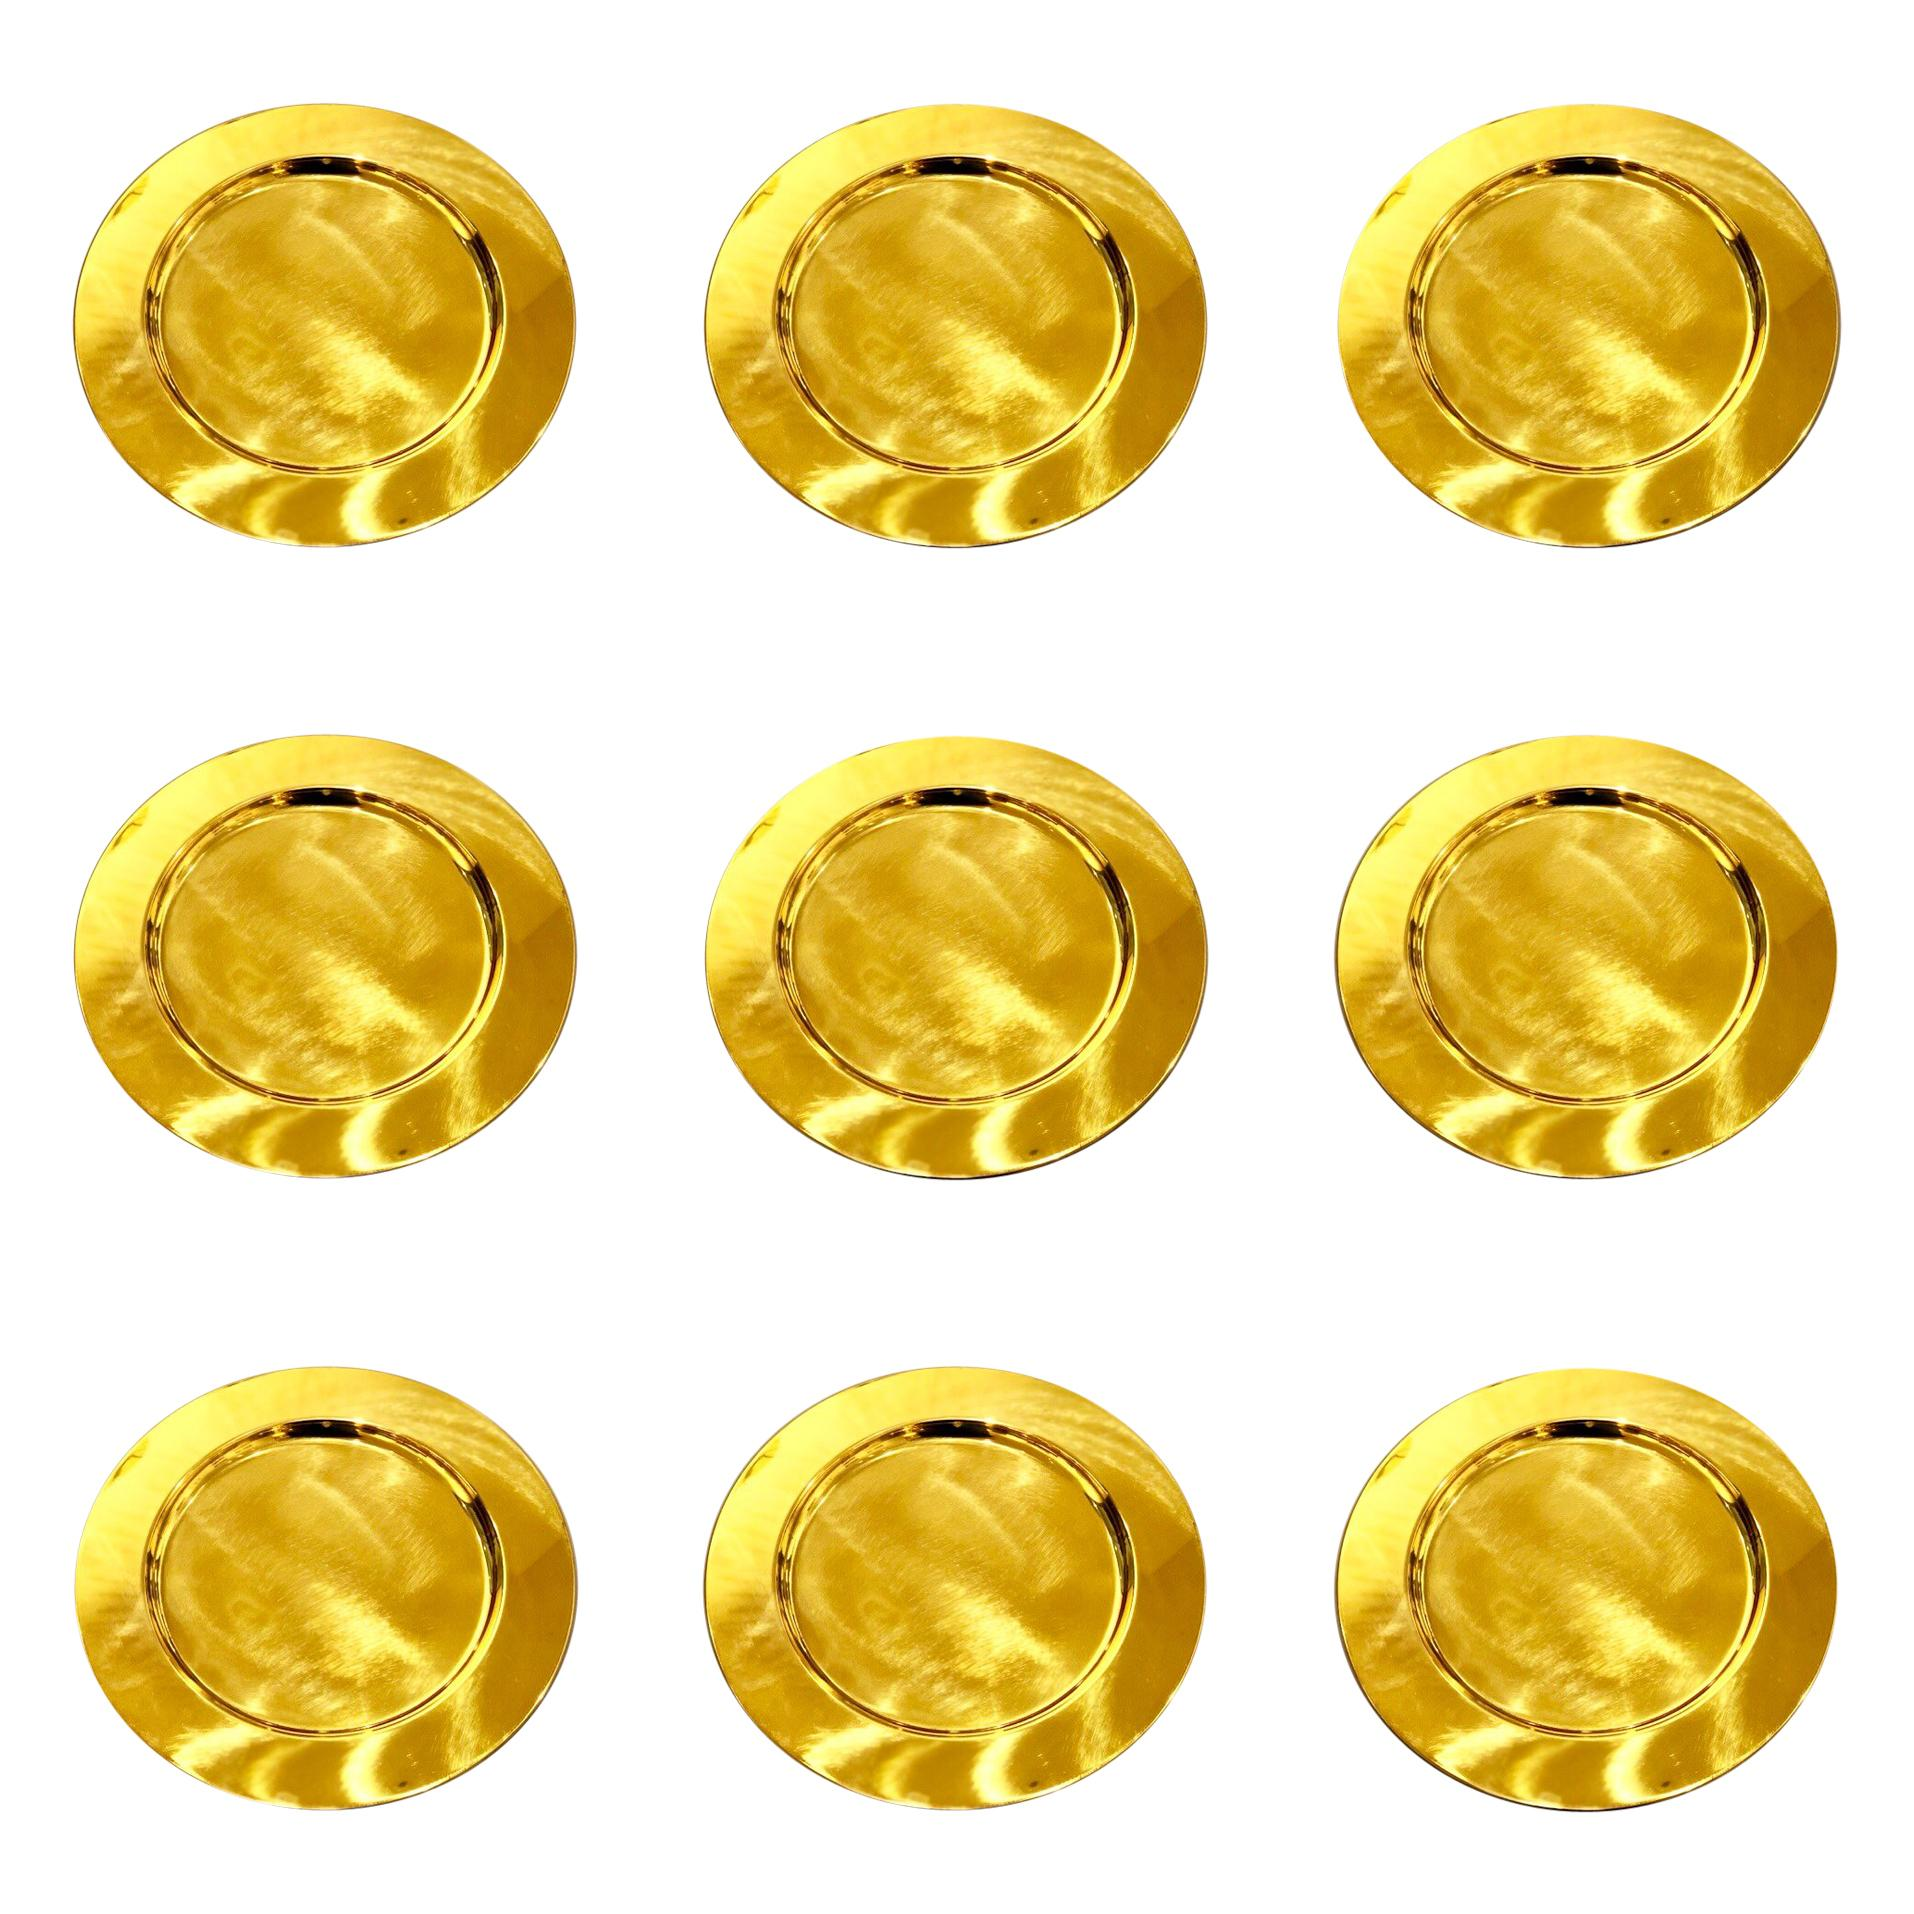 Set of 5 Modern Charger Plates in Brass Made in Denmark